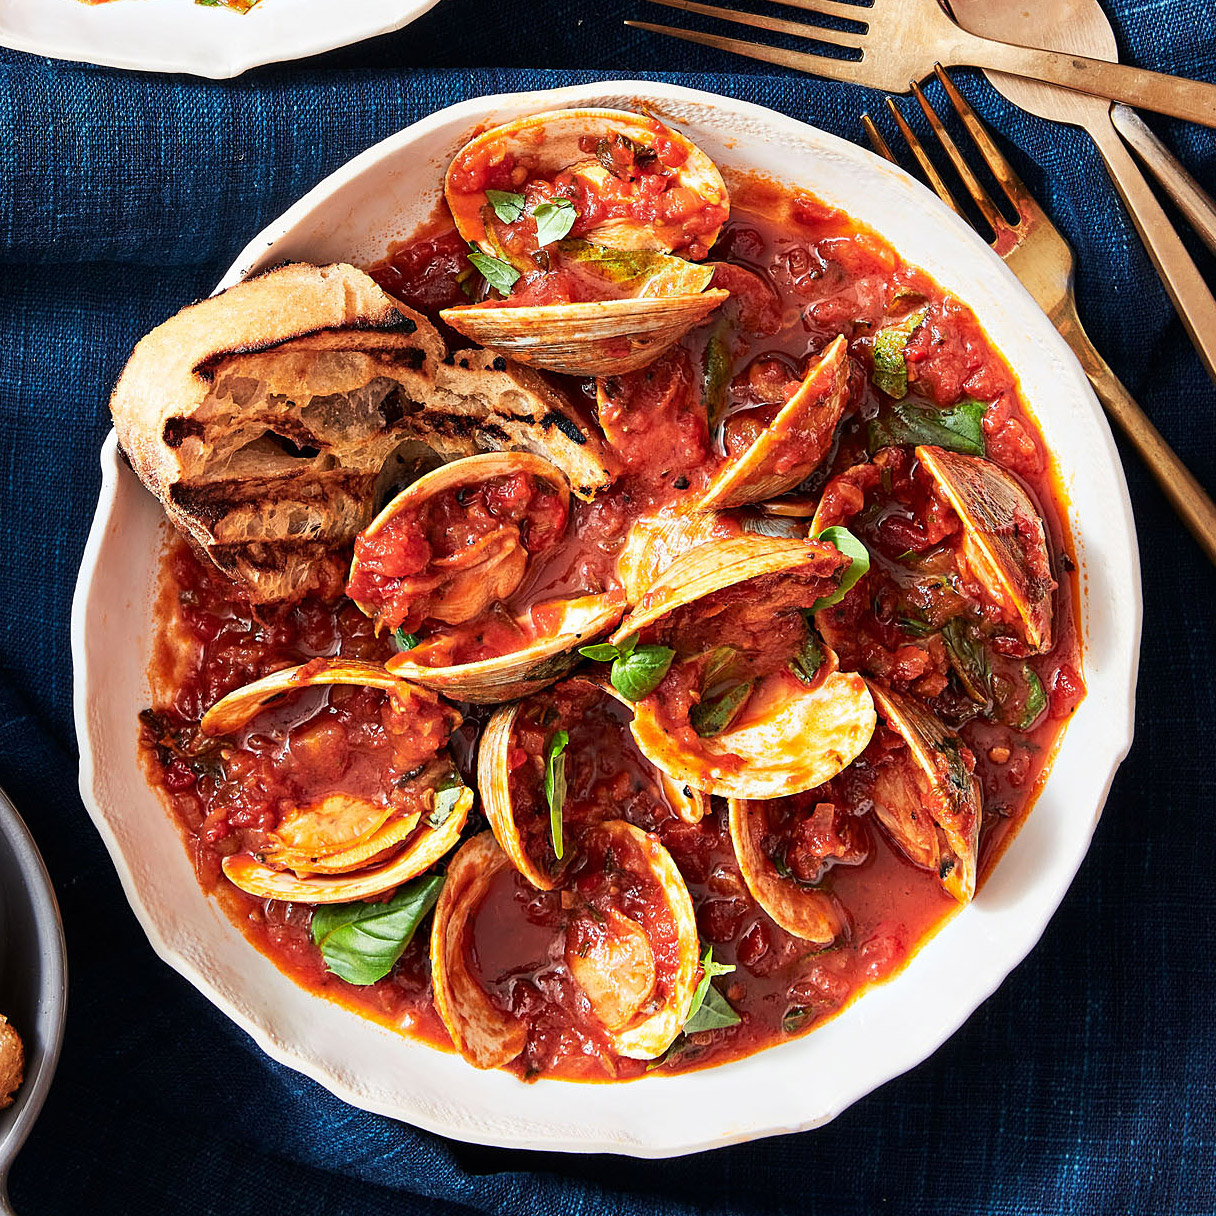 Rachael Ray's Agrodolce Clams with Red Sauce